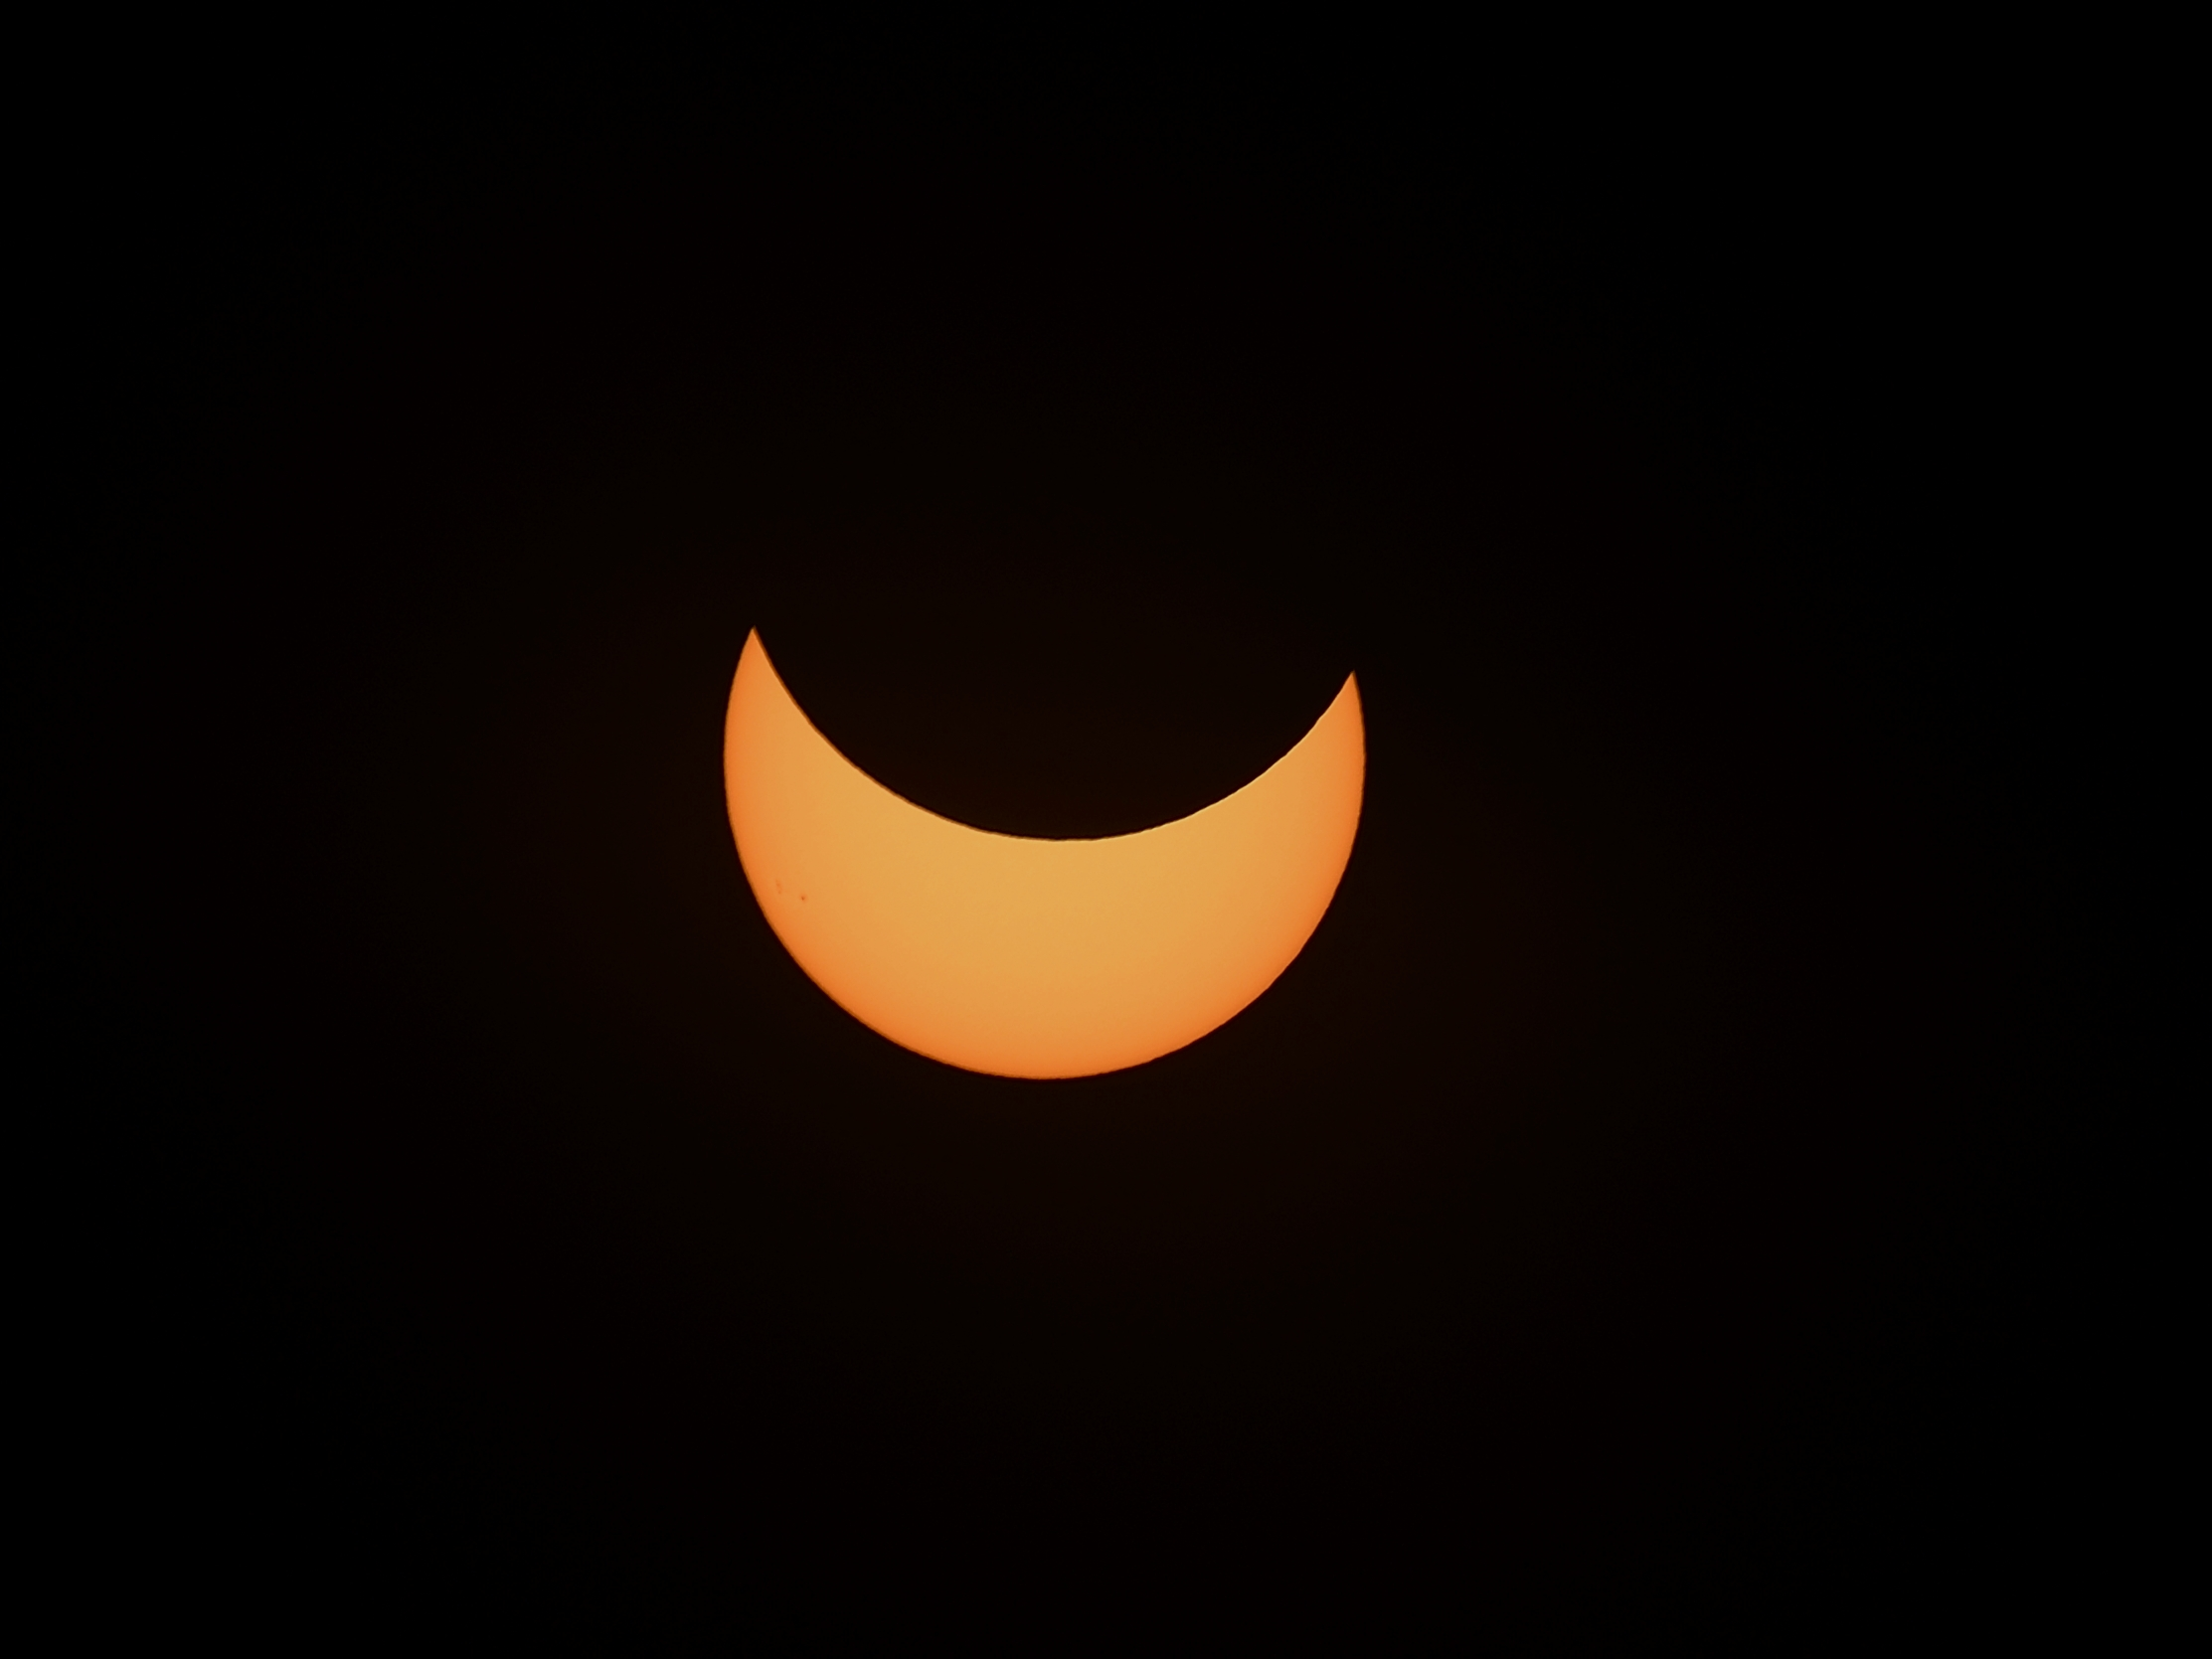 JVSmith_170821_Solar Eclipse Houston_D500_69.jpg